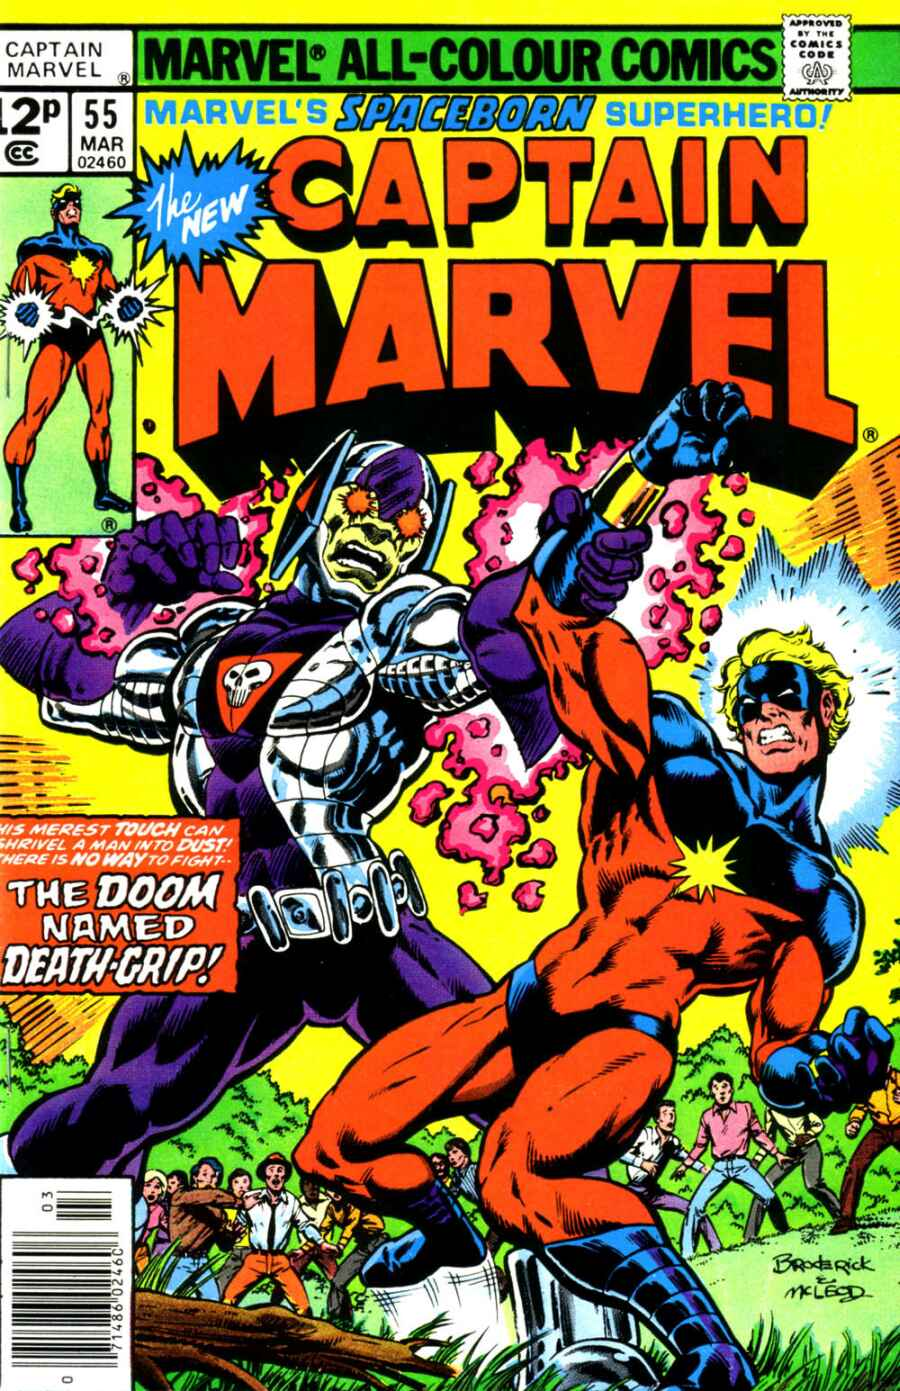 Captain Marvel (1968) #55, cover penciled by Pat Broderick & inked by Bob McLeod.